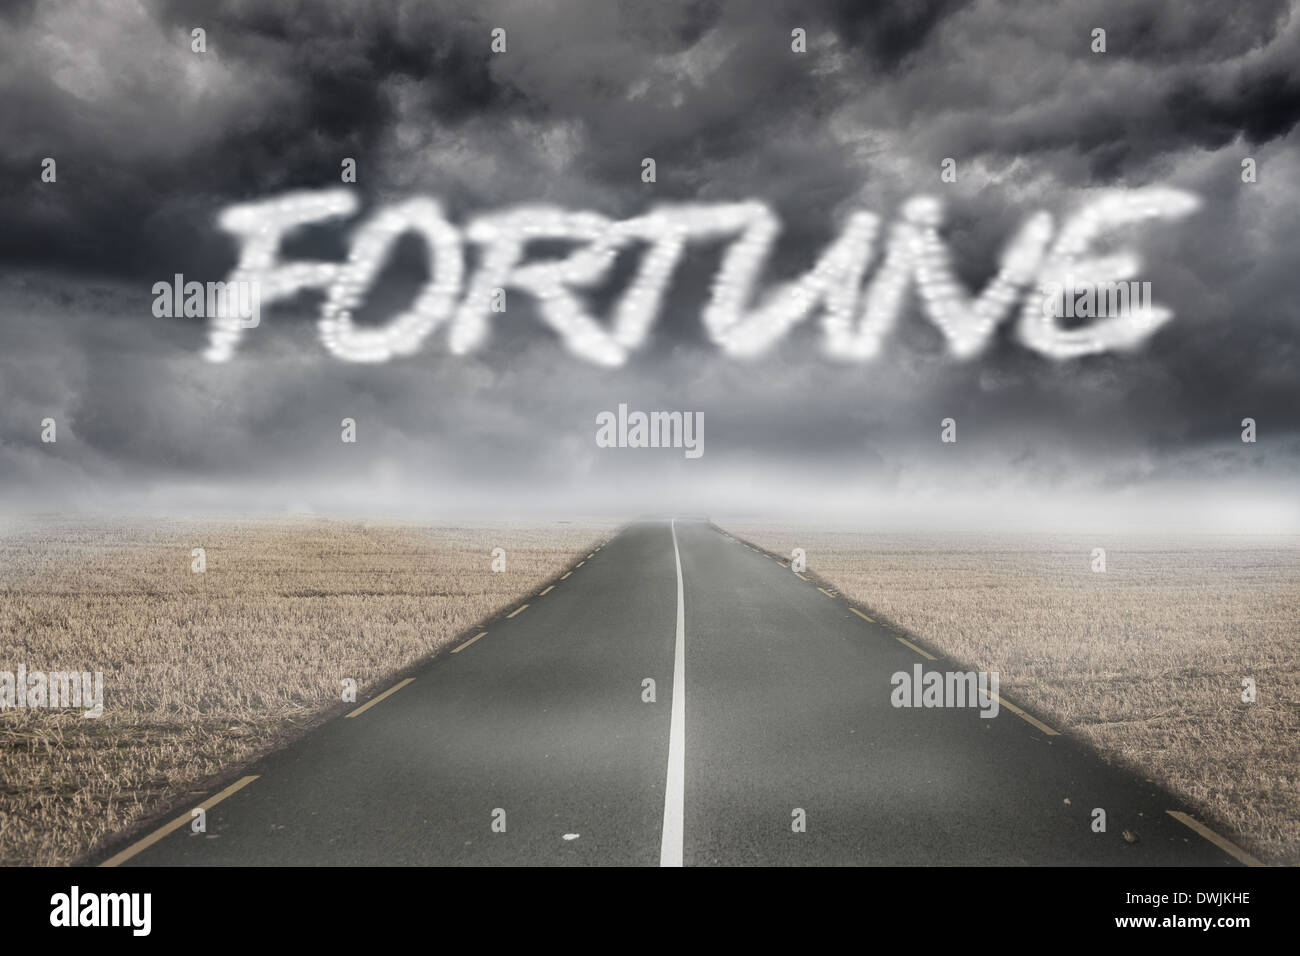 Fortune against misty brown landscape with street - Stock Image